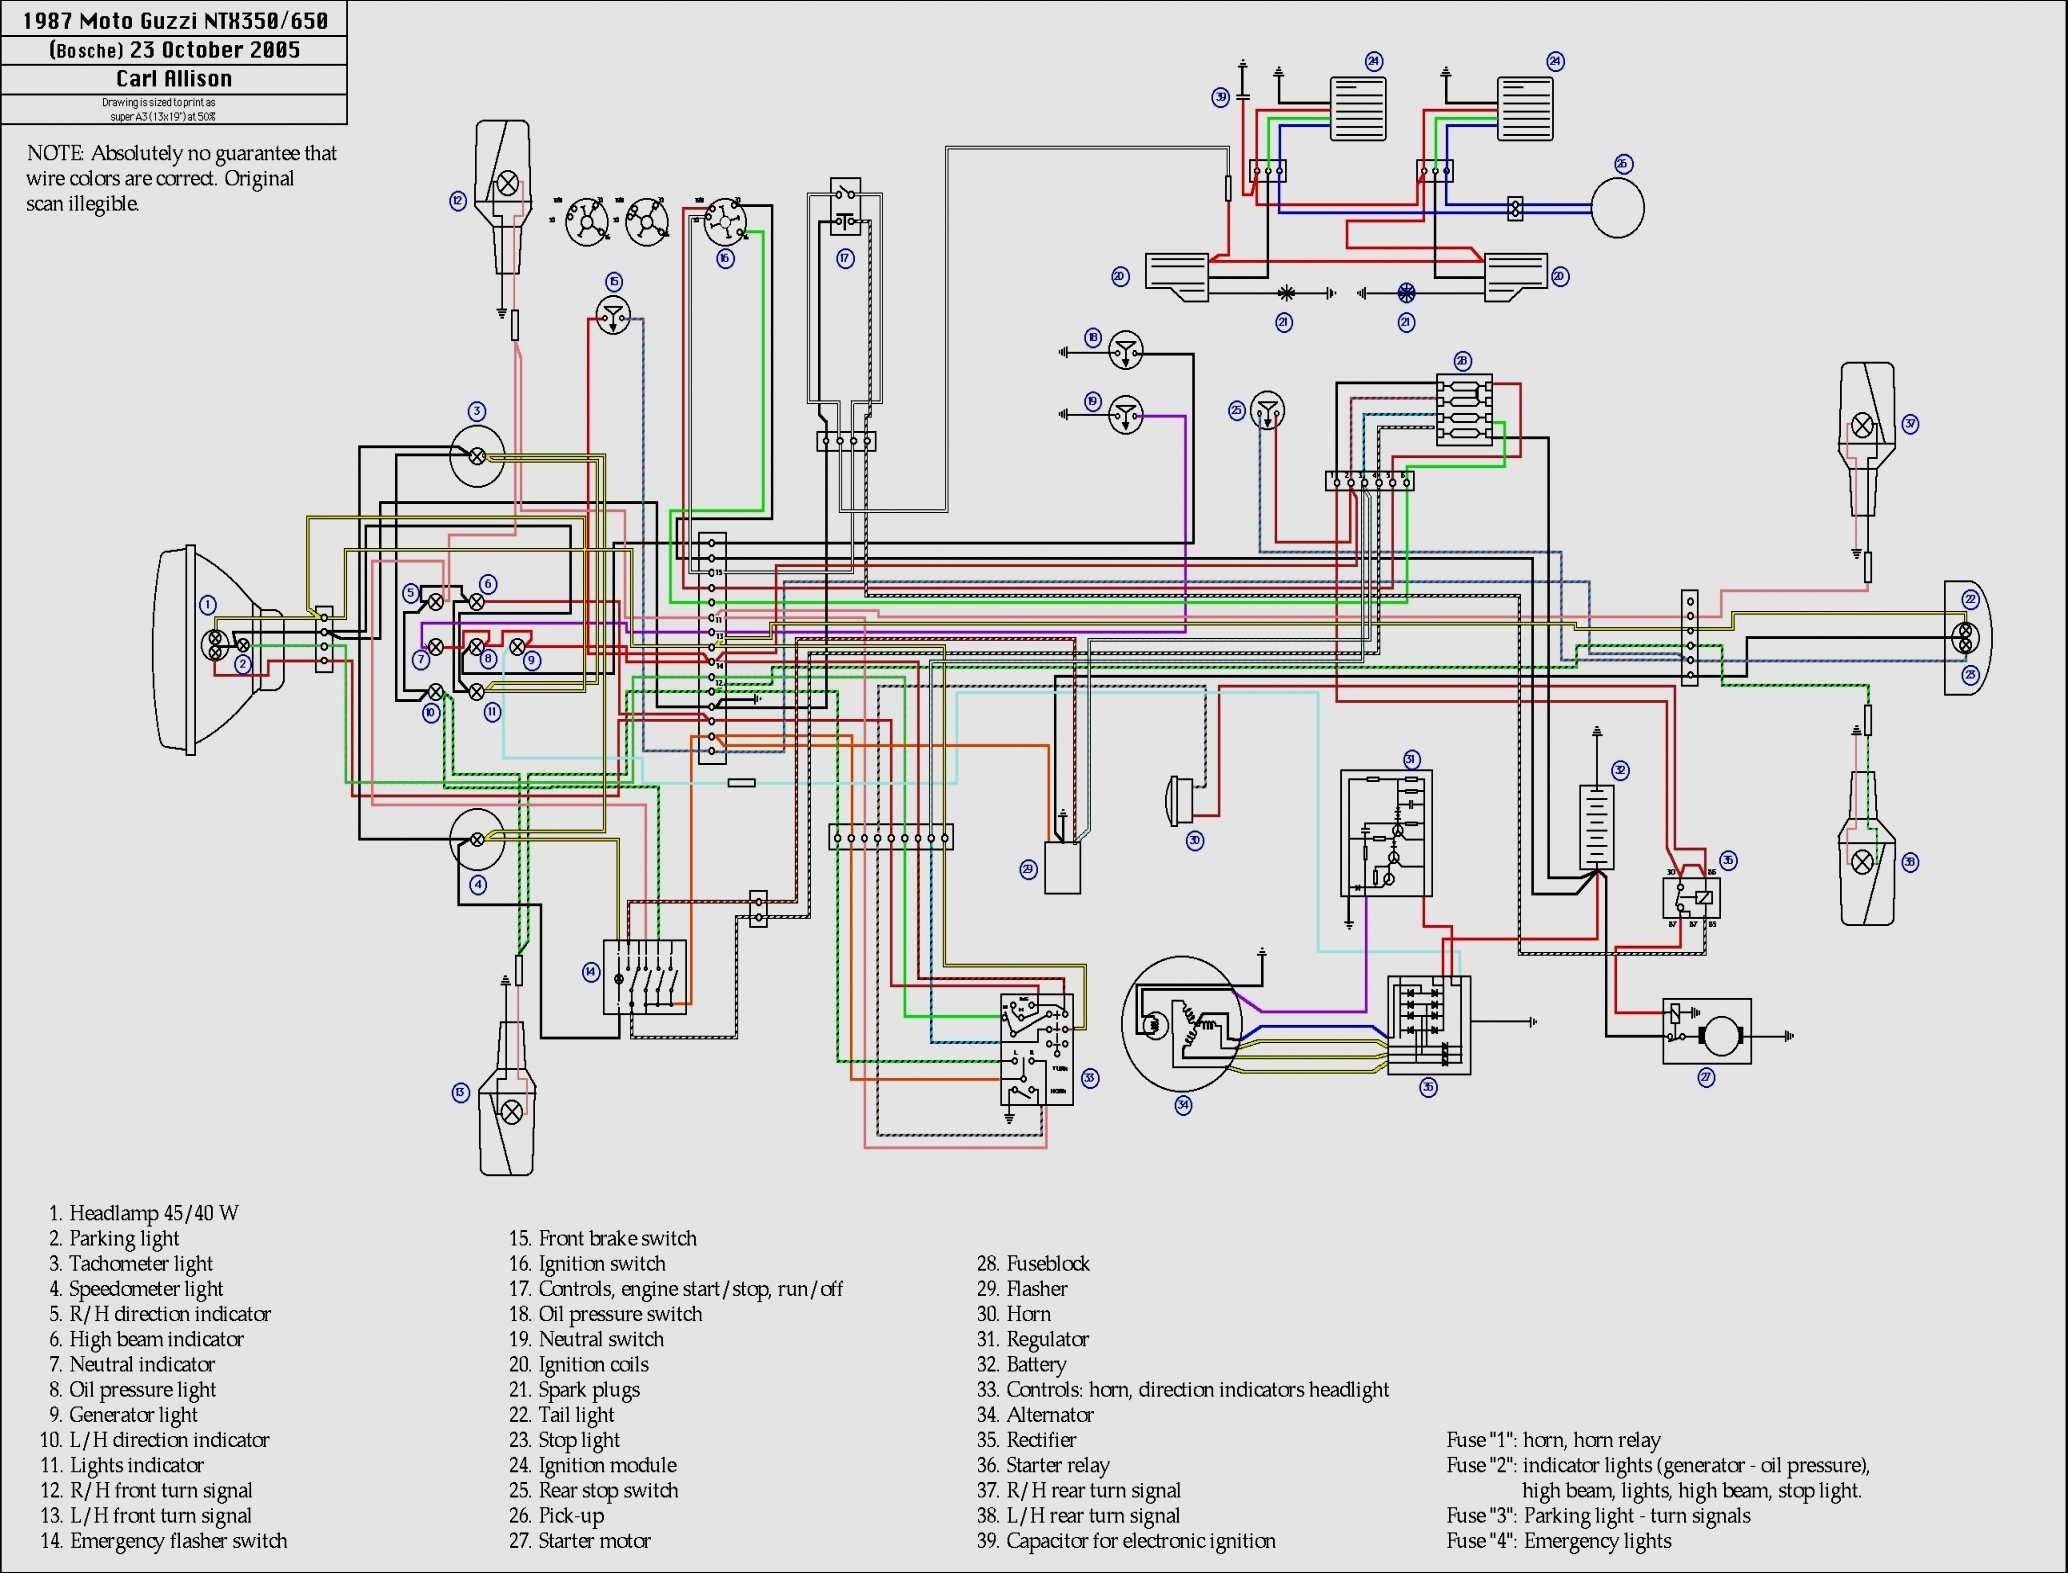 Unique Wiring Diagram For Ignition Switch Motorcycle Wiring Electrical Diagram Electrical Wiring Diagram